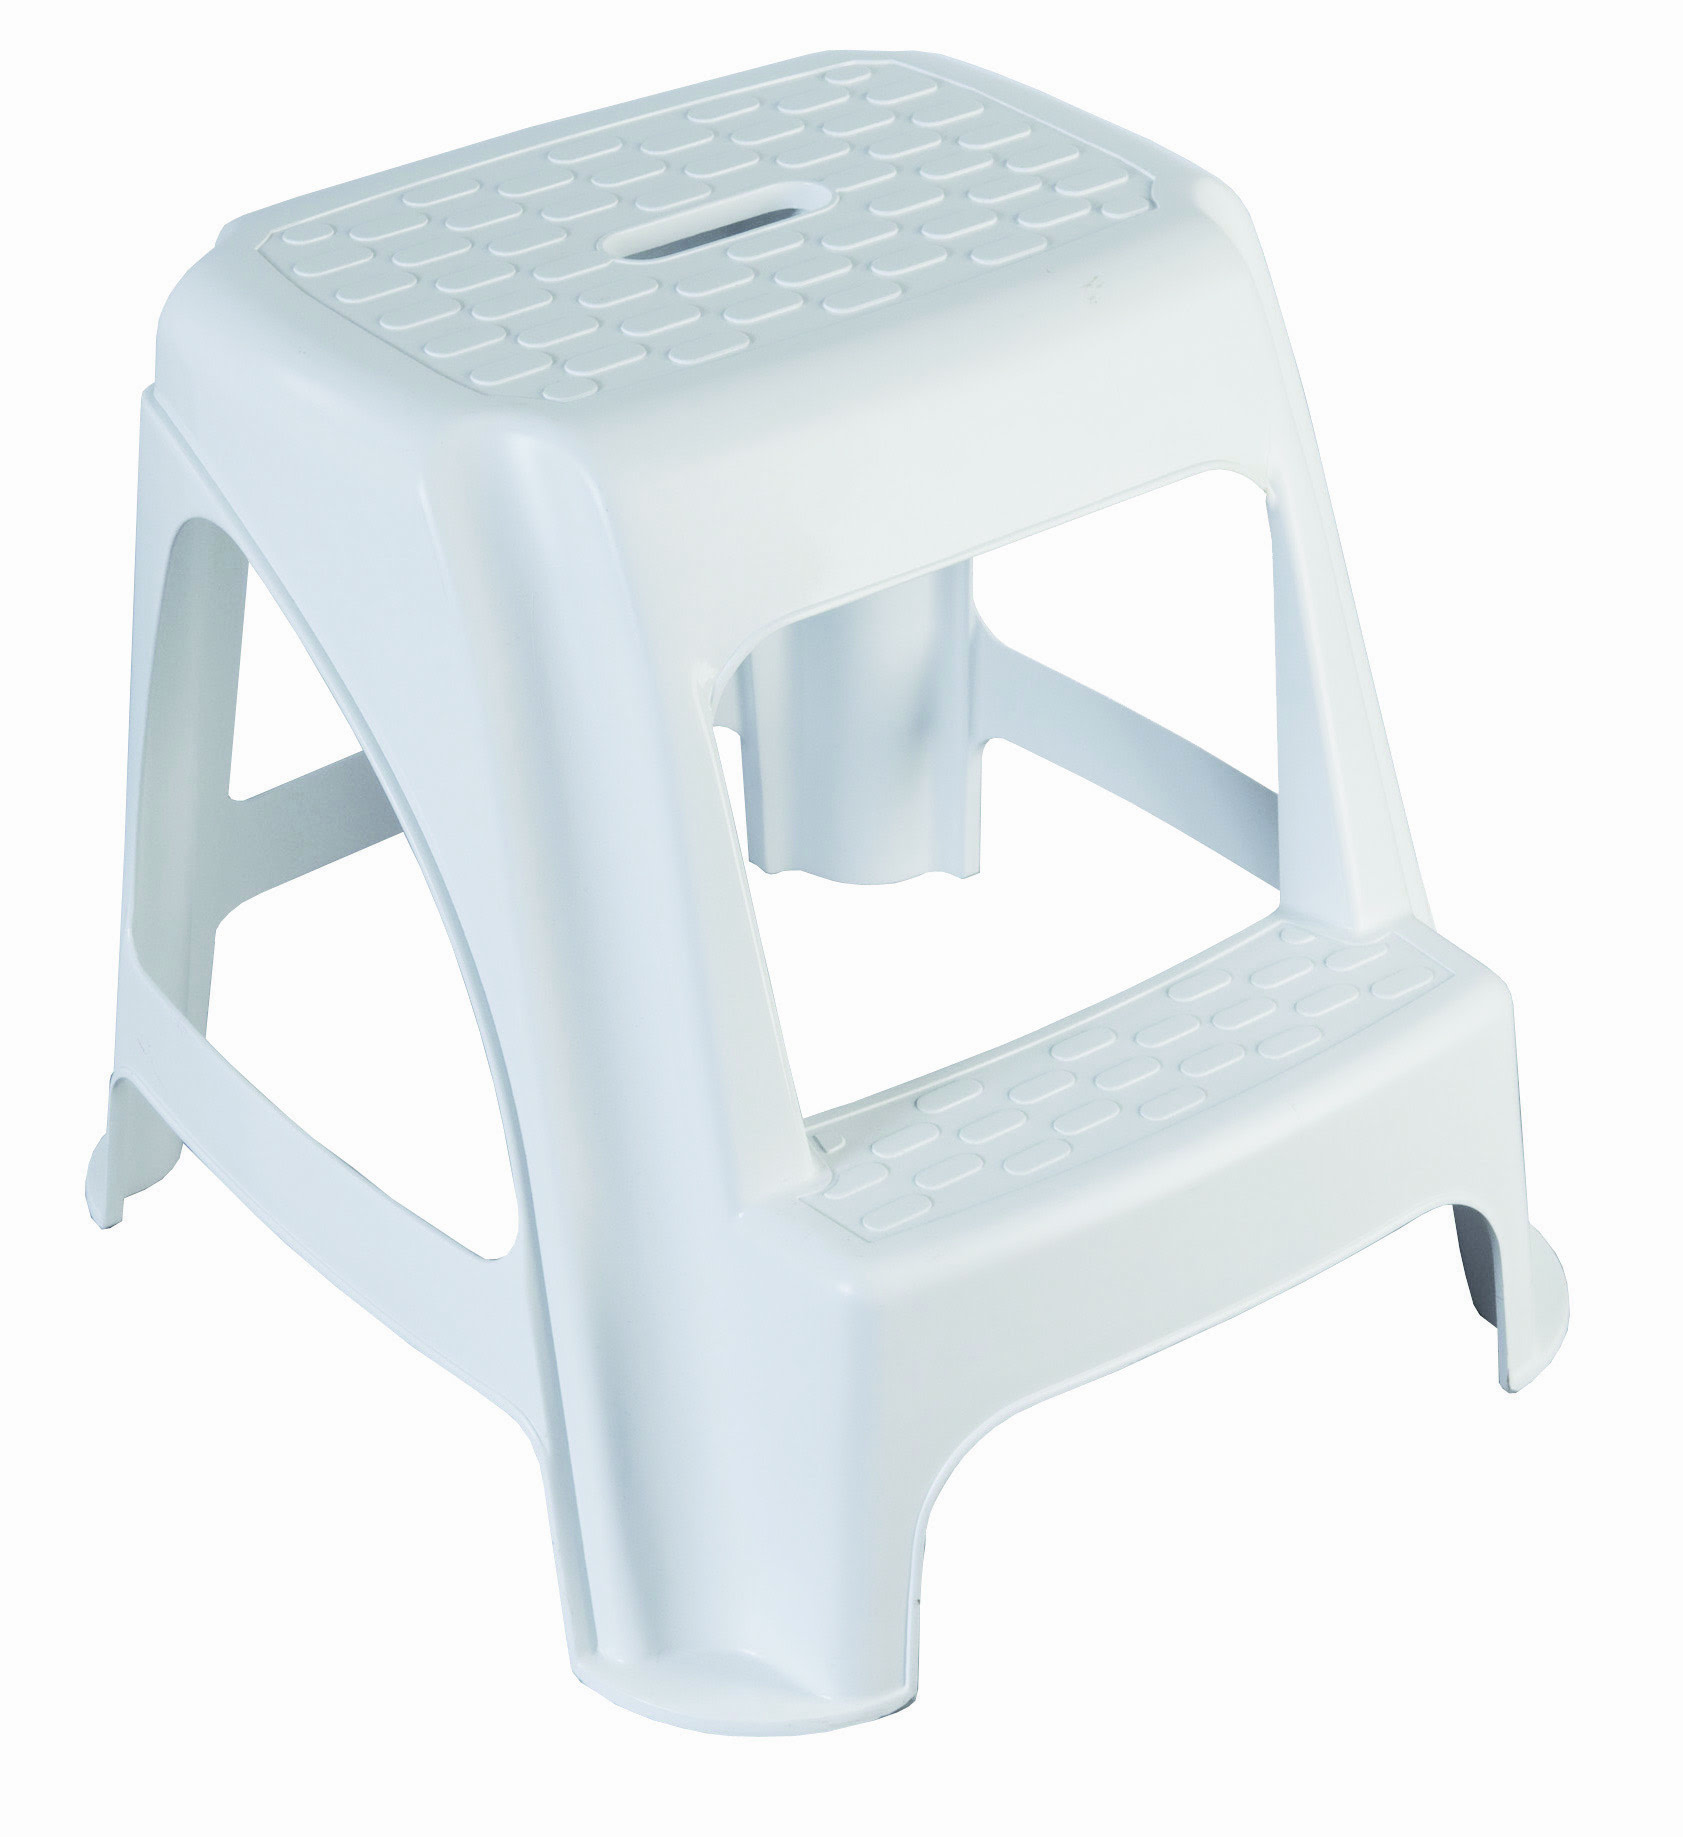 Plastic Step Stool Uk Manufactured Warehouse And Safety